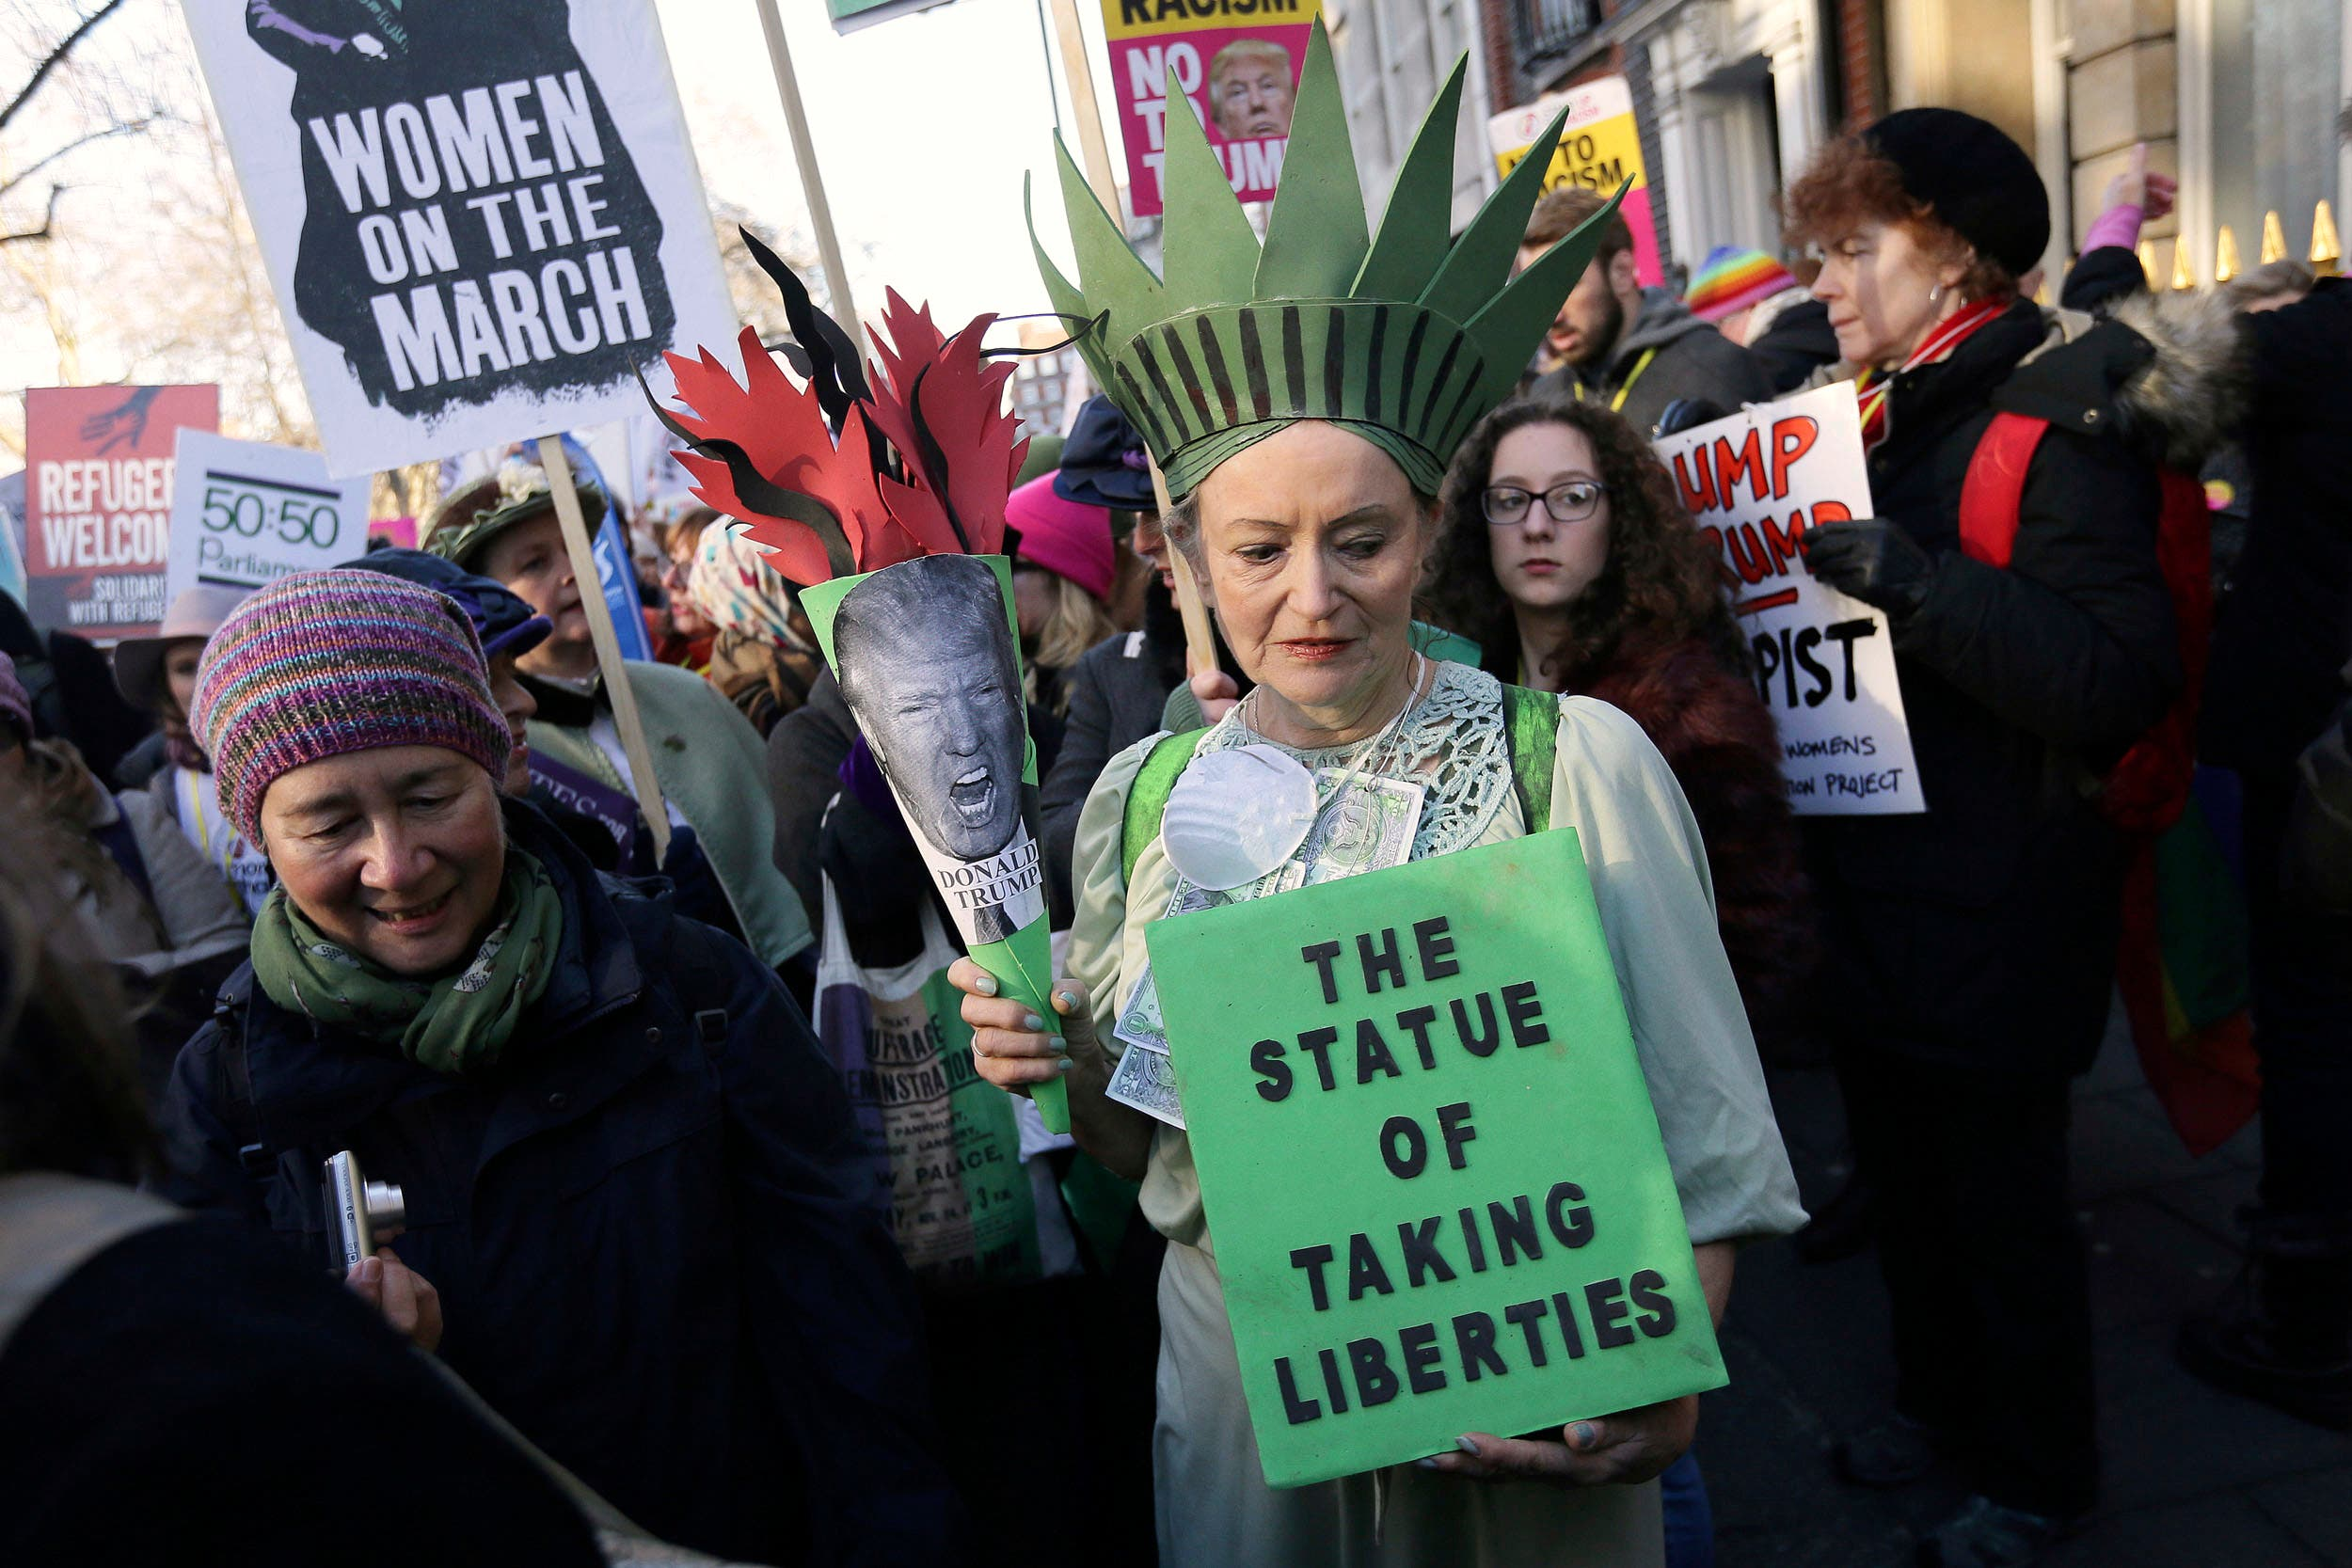 Demonstrators take part in the Women's March on London, following the Inauguration of U.S. President Donald Trump, in London, Saturday Jan. 21, 2016. (AP)